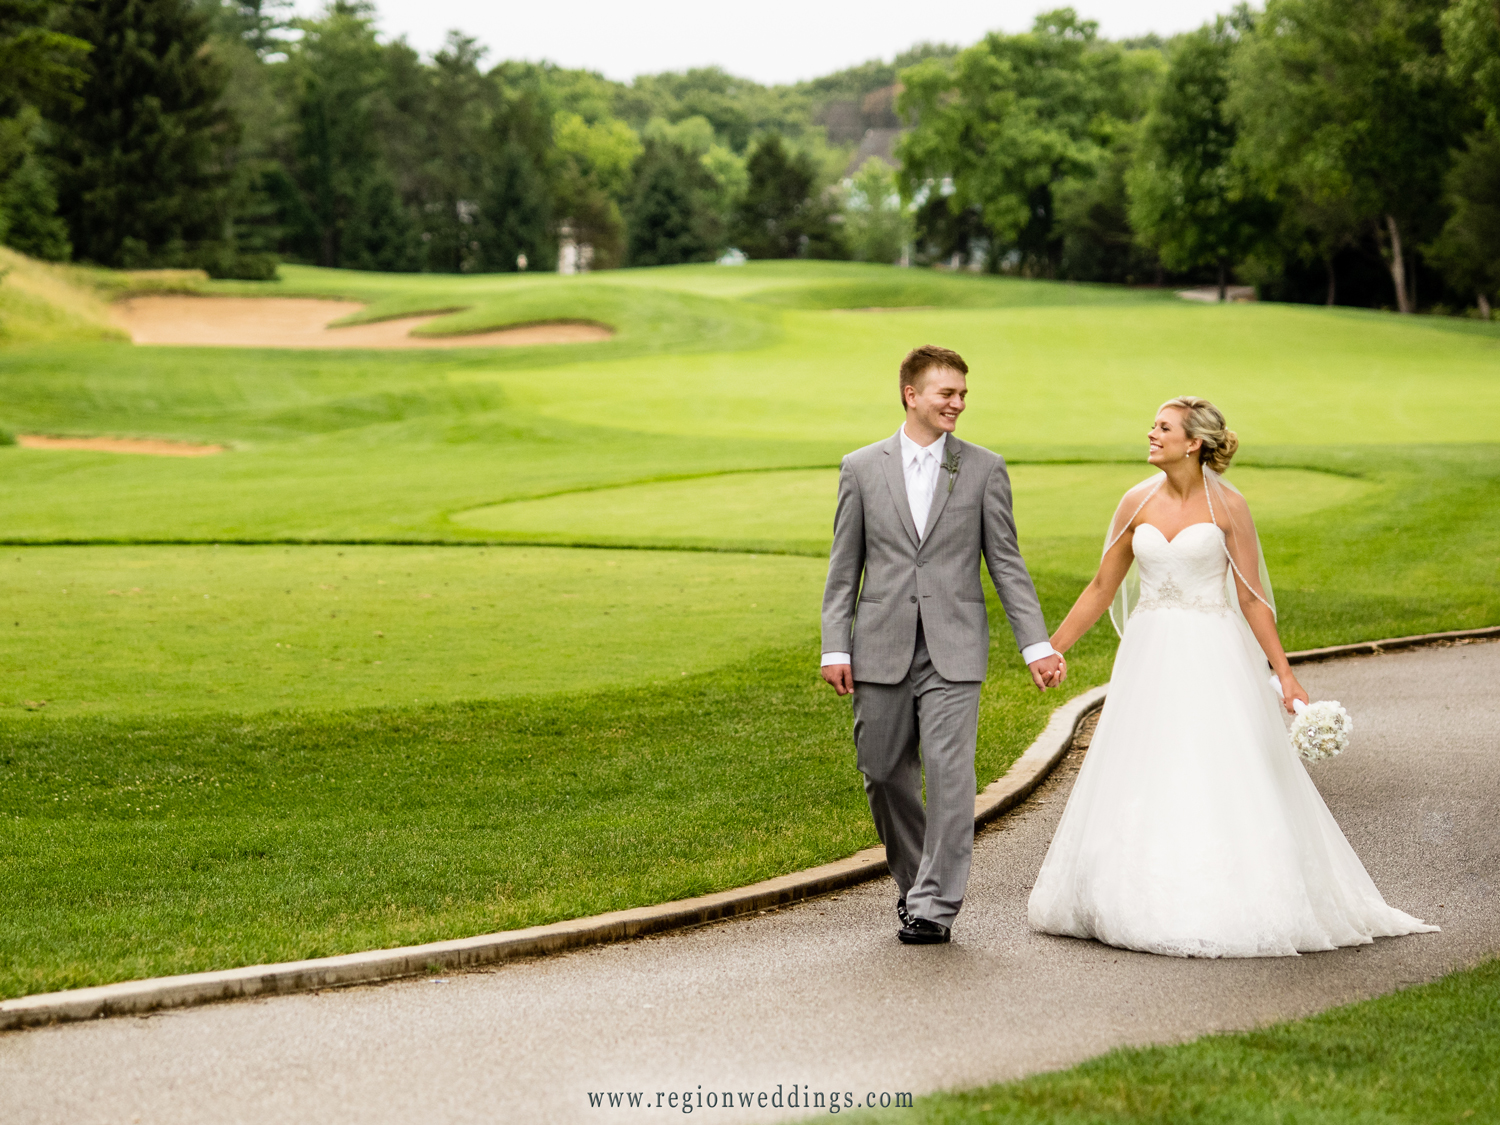 Bride and groom stroll the golf course at Sandy Pines in Demotte, Indiana.